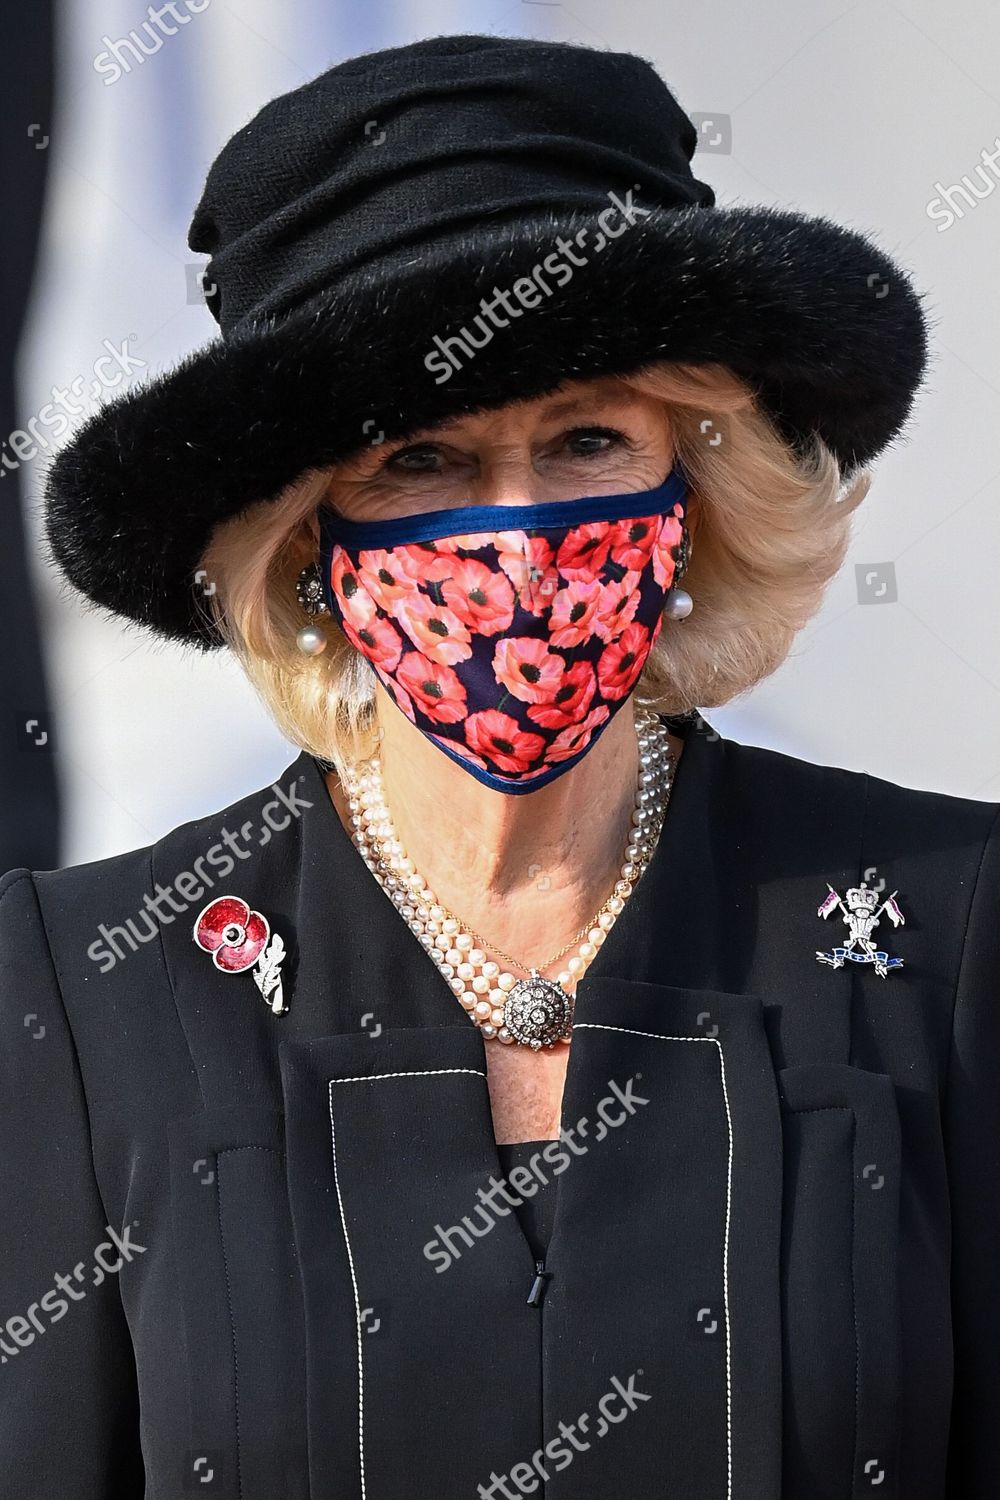 prince-charles-and-camilla-duchess-of-cornwall-visit-to-berlin-germany-shutterstock-editorial-11016282h.jpg